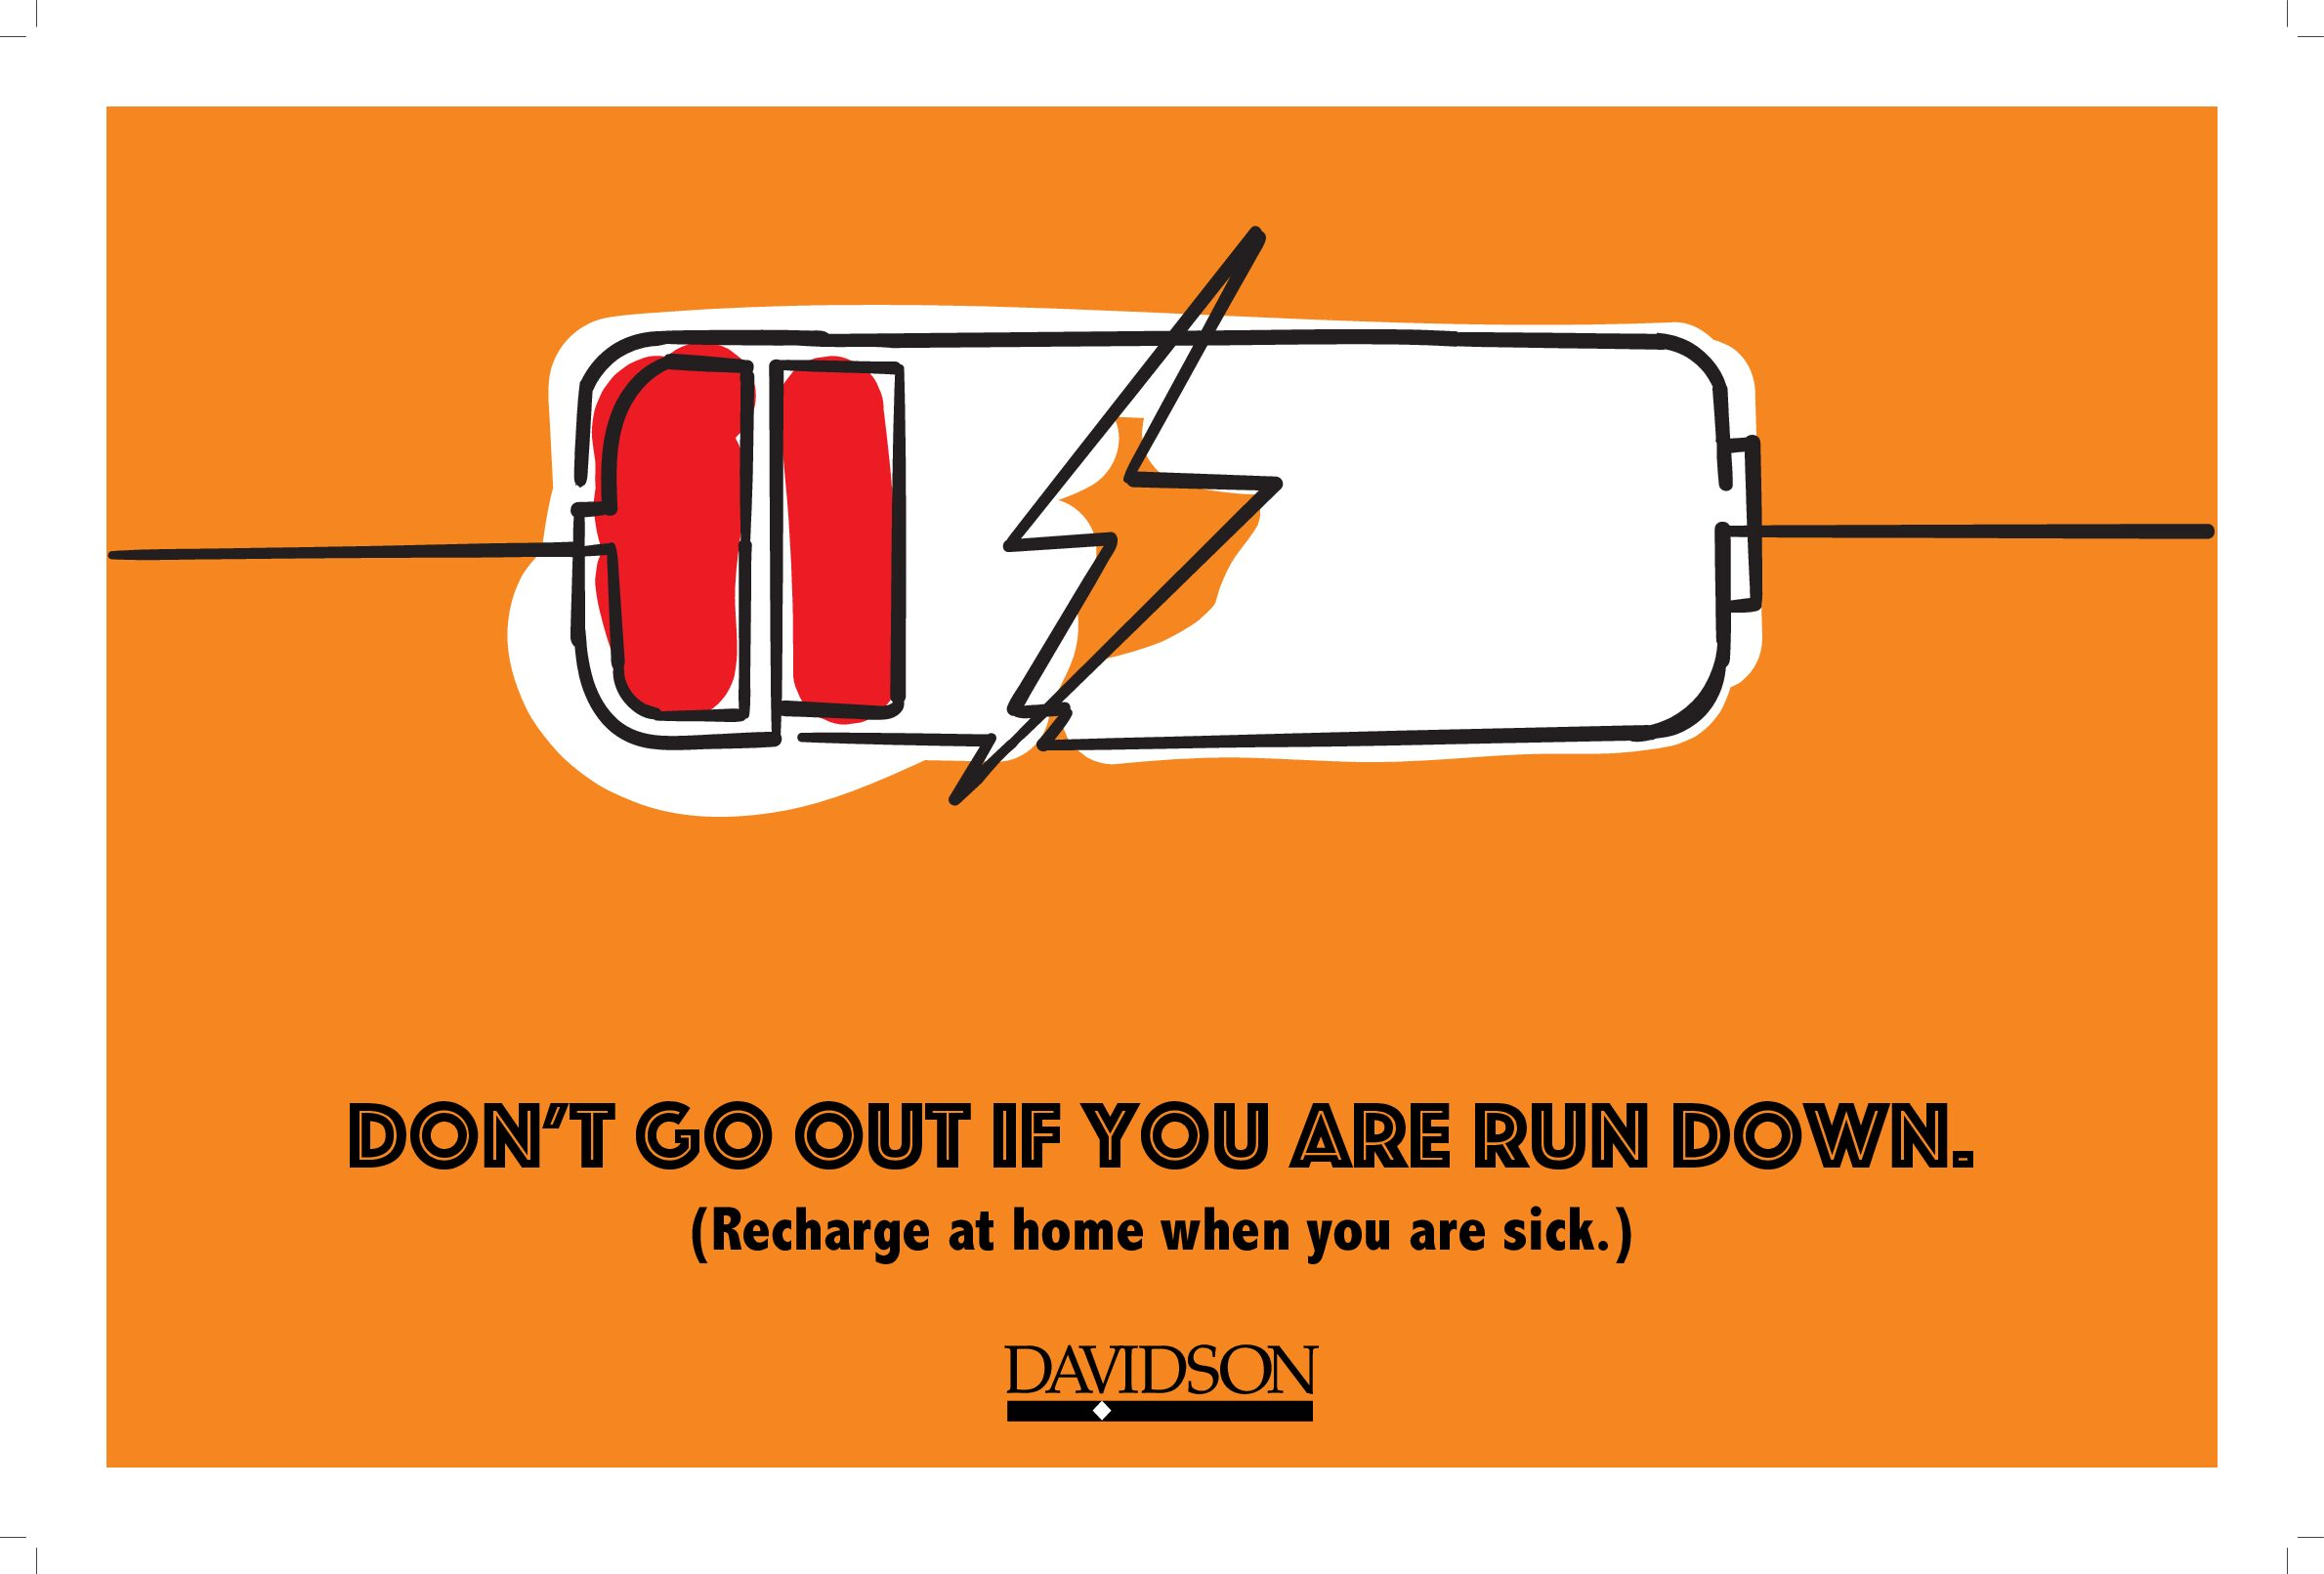 Don't go out if you are run down. Recharge at home if you are sick.